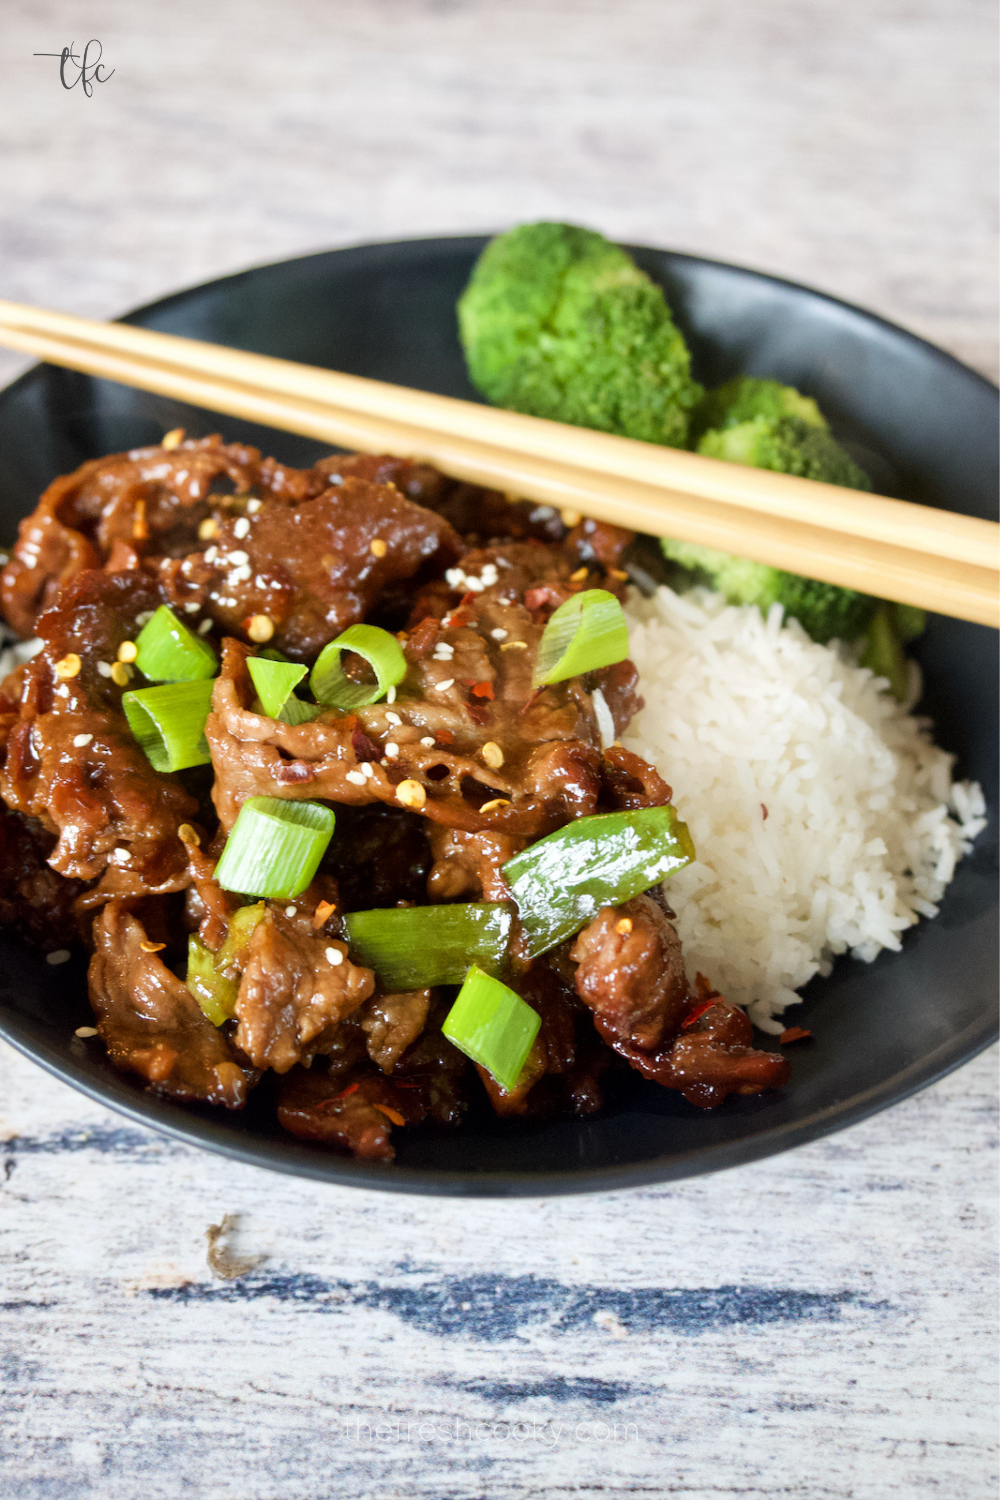 Mongolian Beef crispy and saucy in a black bowl with white rice and steamed broccoli.